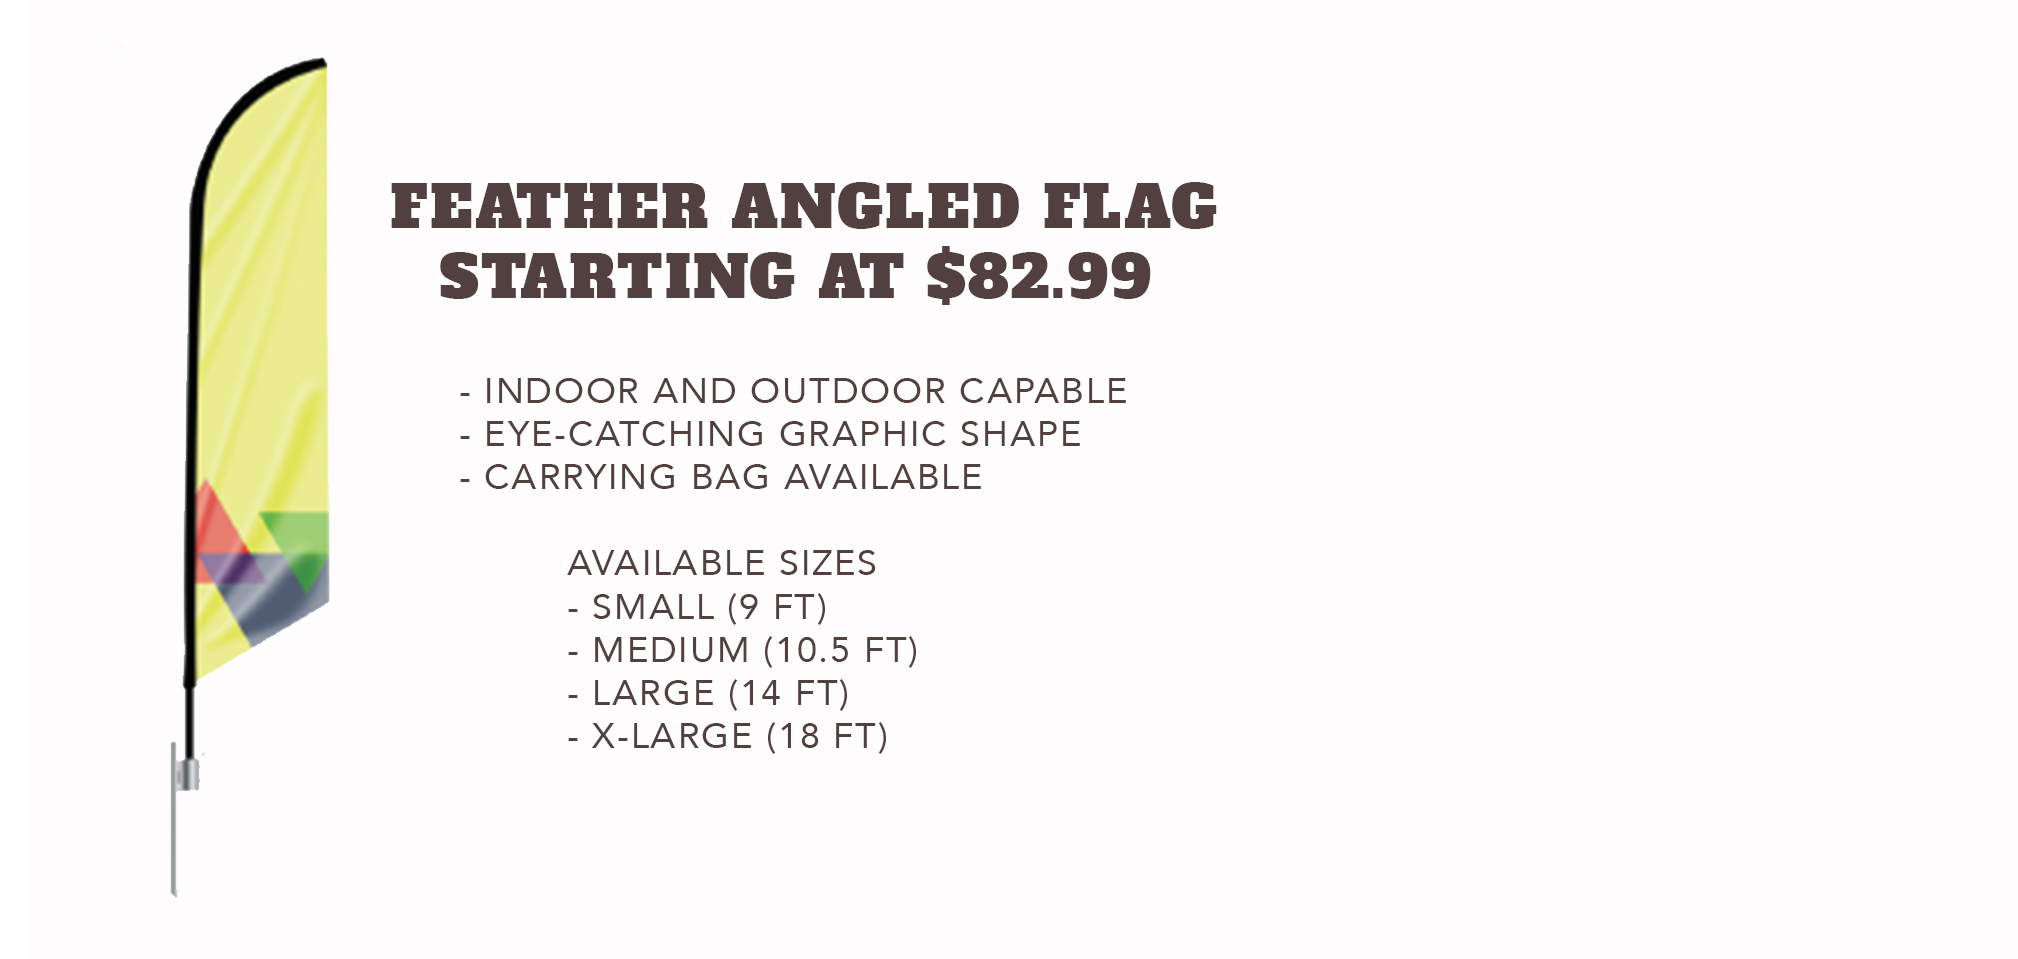 Feather Angled Flag - Starting at $82.99